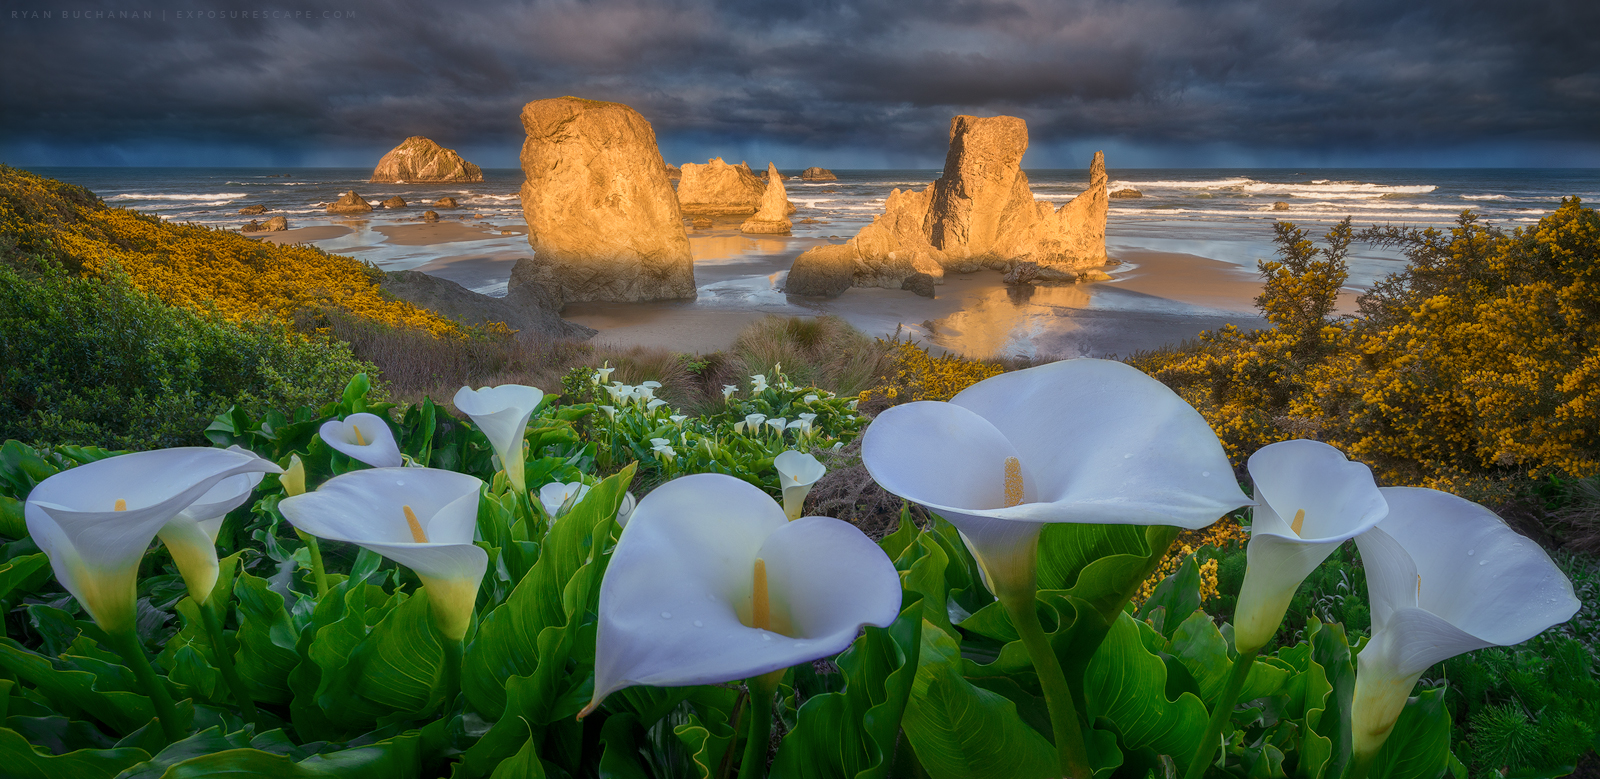 A nice patch of calla lilies overlooking the unique seastacks of Bandon Beach.